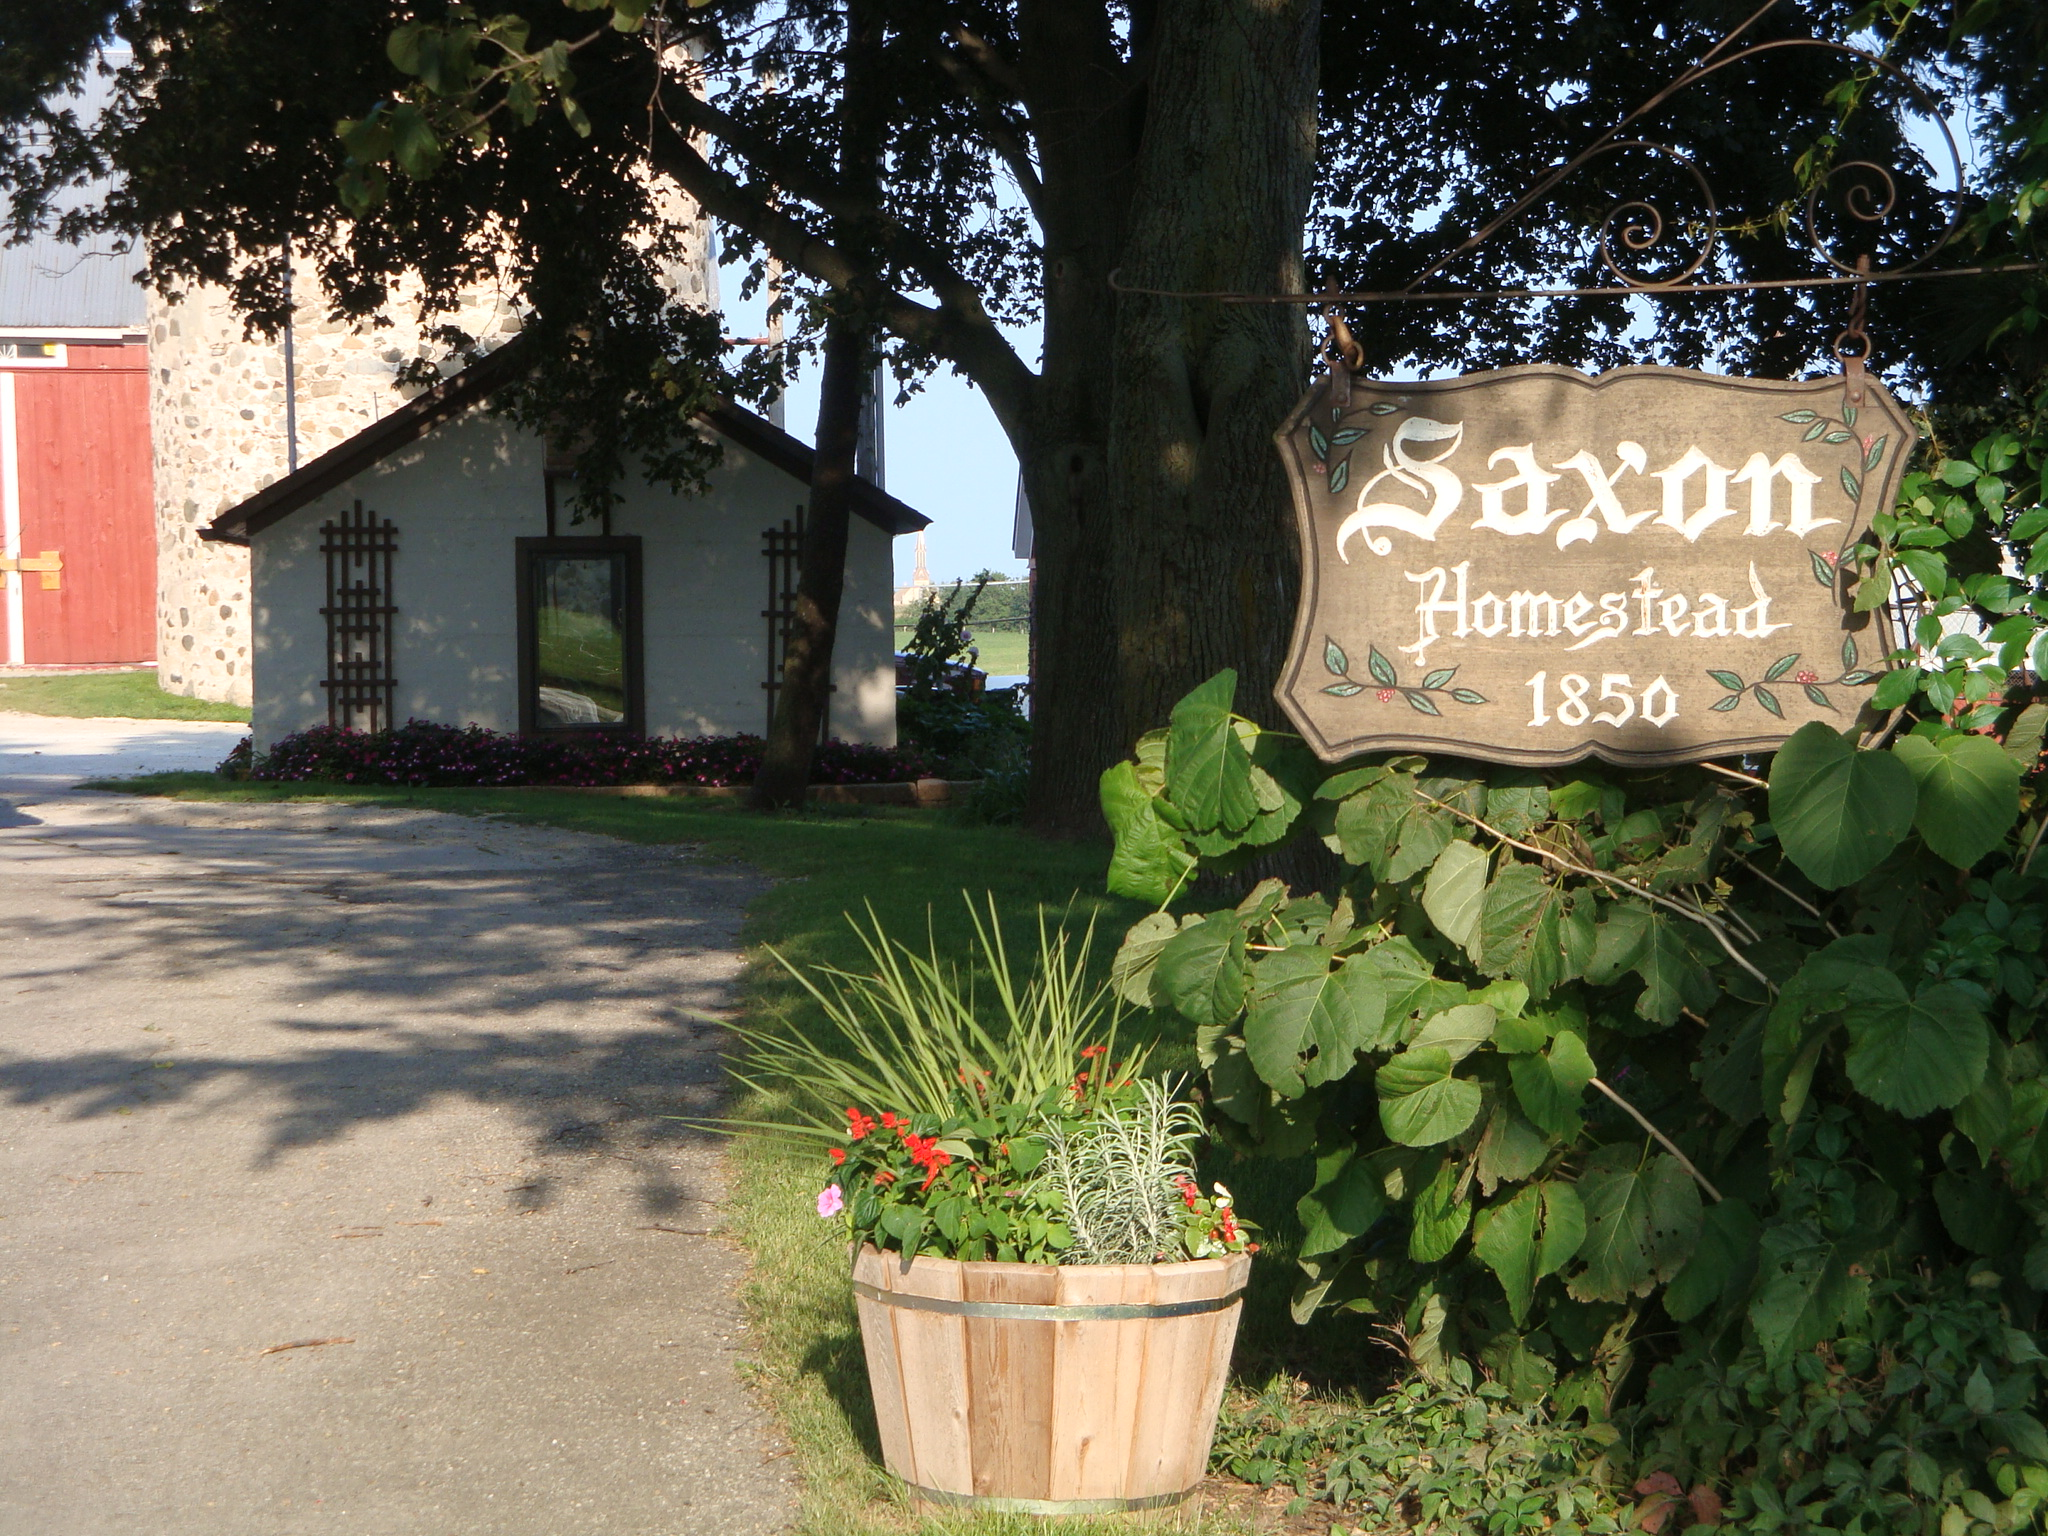 Saxon Homestead Farm entrance